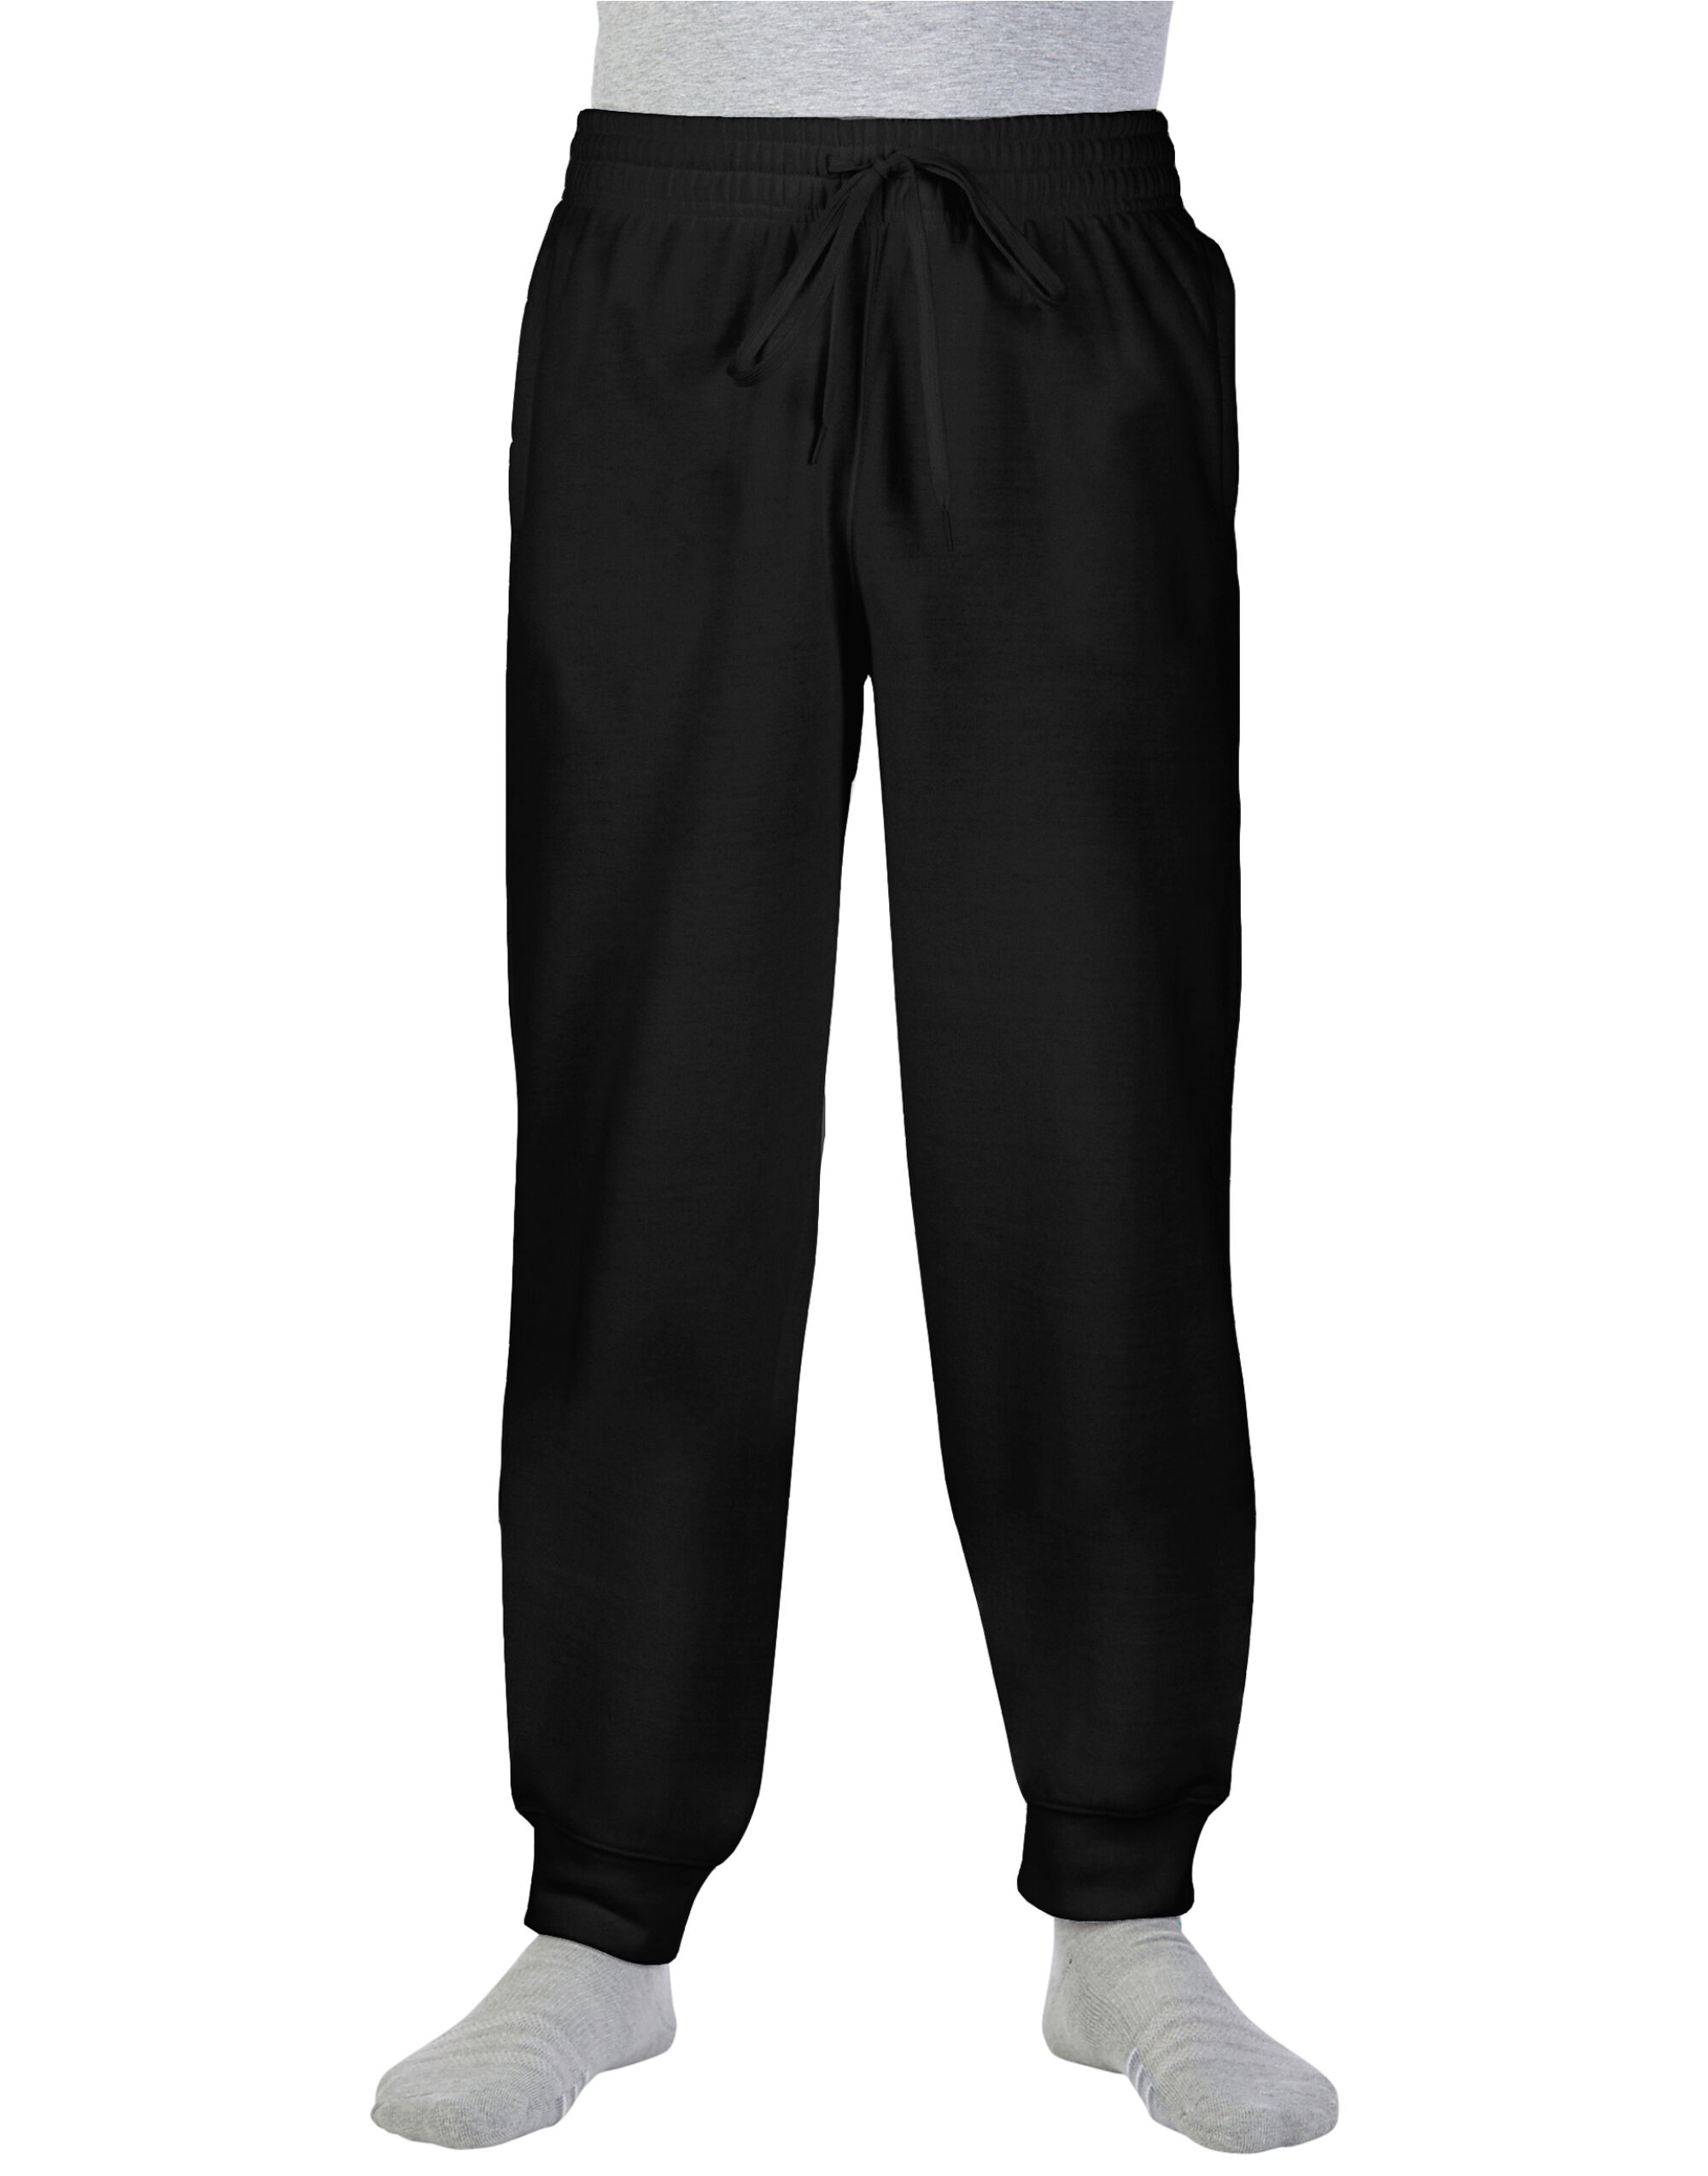 Heavy Blend Cuff Sweatpants